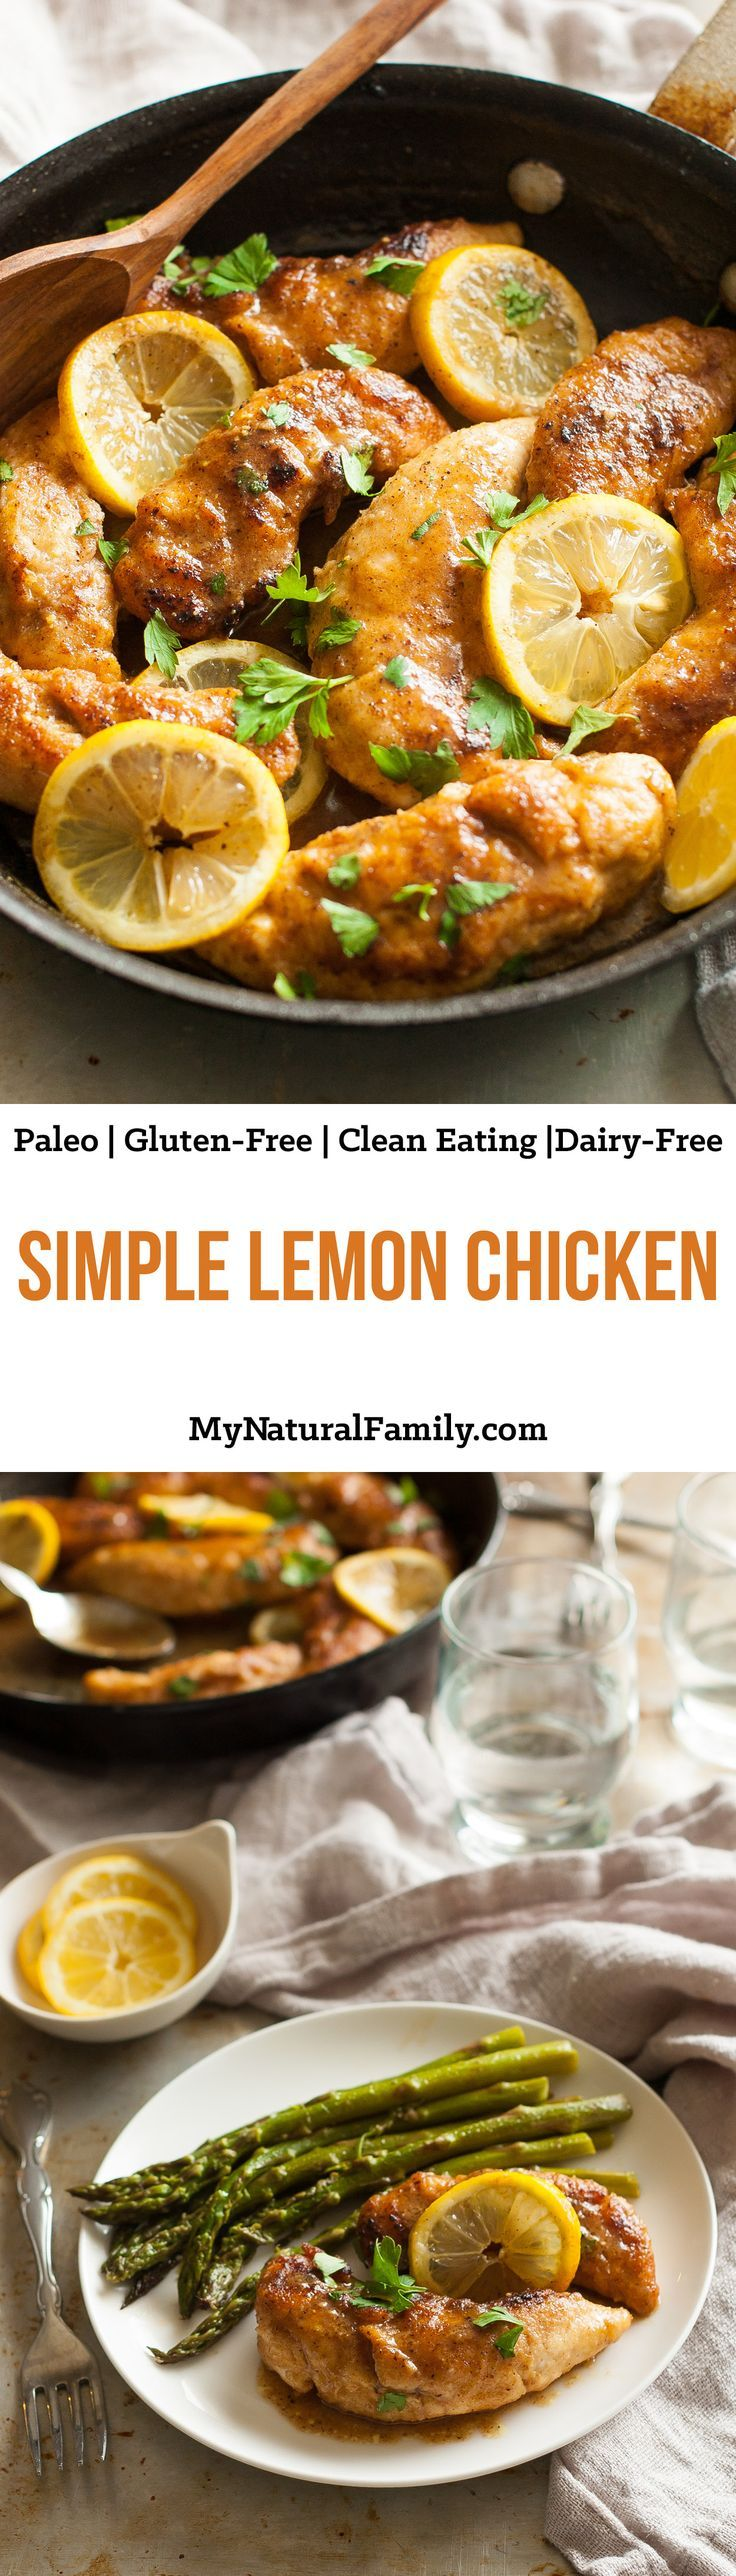 Simple Lemon Chicken Recipe {Paleo, Gluten-Free, Clean Eating, Dairy-Free} - this has a simple breading and after it's all golden brown, you make a quick lemon sauce right in the pan. I've made this hundreds of times and I still love it. Make extra sauce